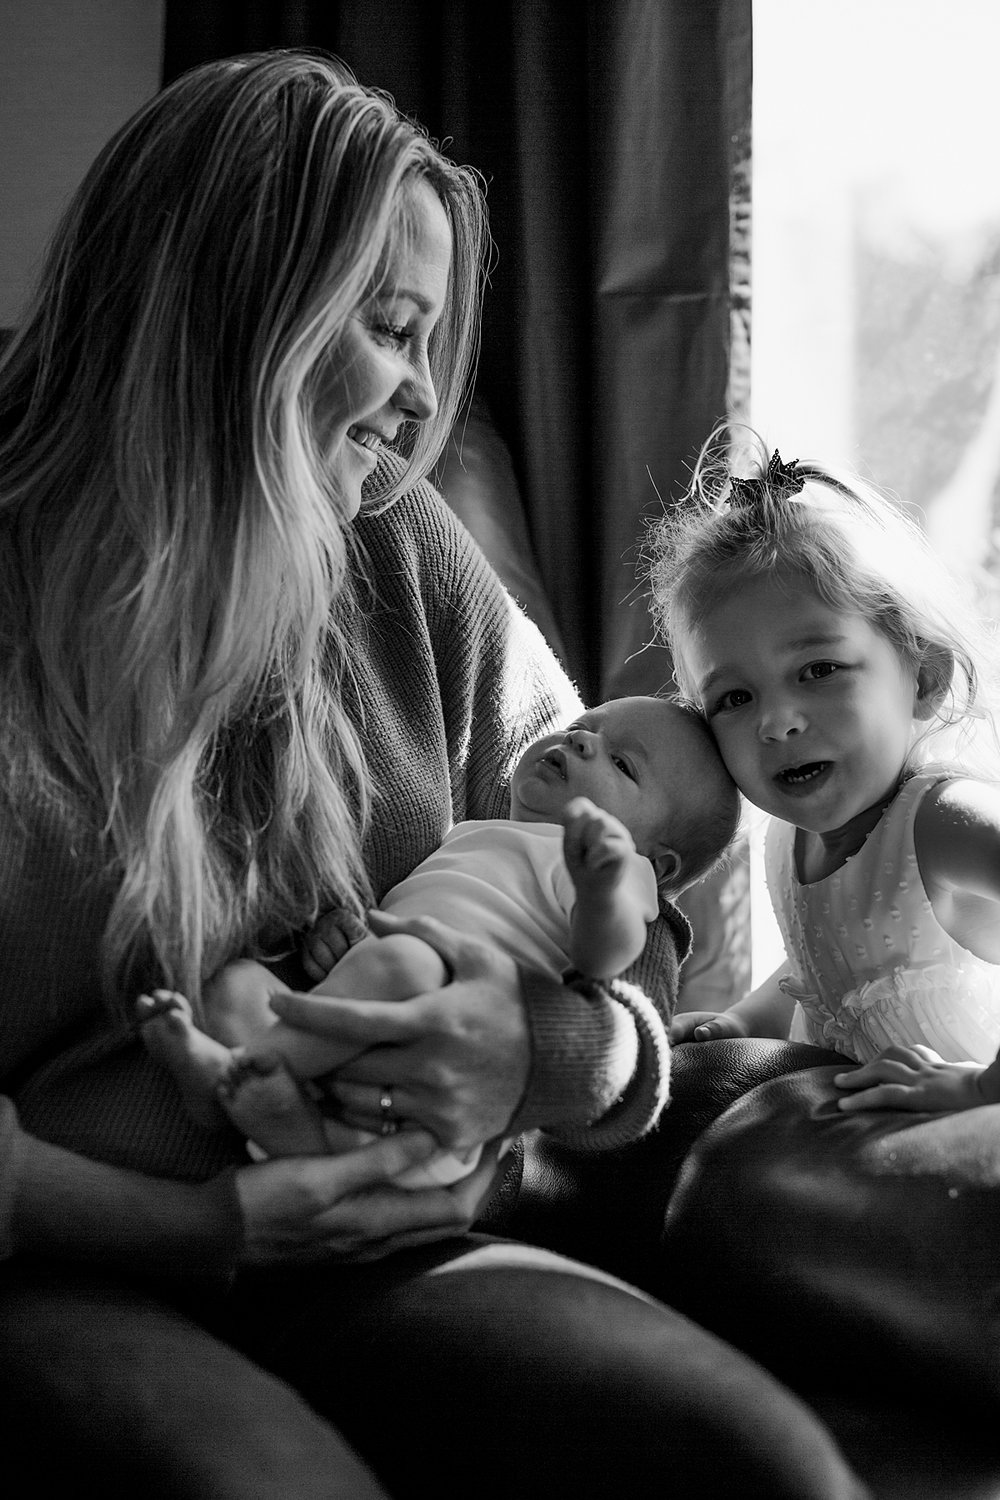 Orange County family photographer. Candid portrait of mom holding newborn son while older daughter comes to say hello during newborn photo shoot in Mission Viejo Orange County